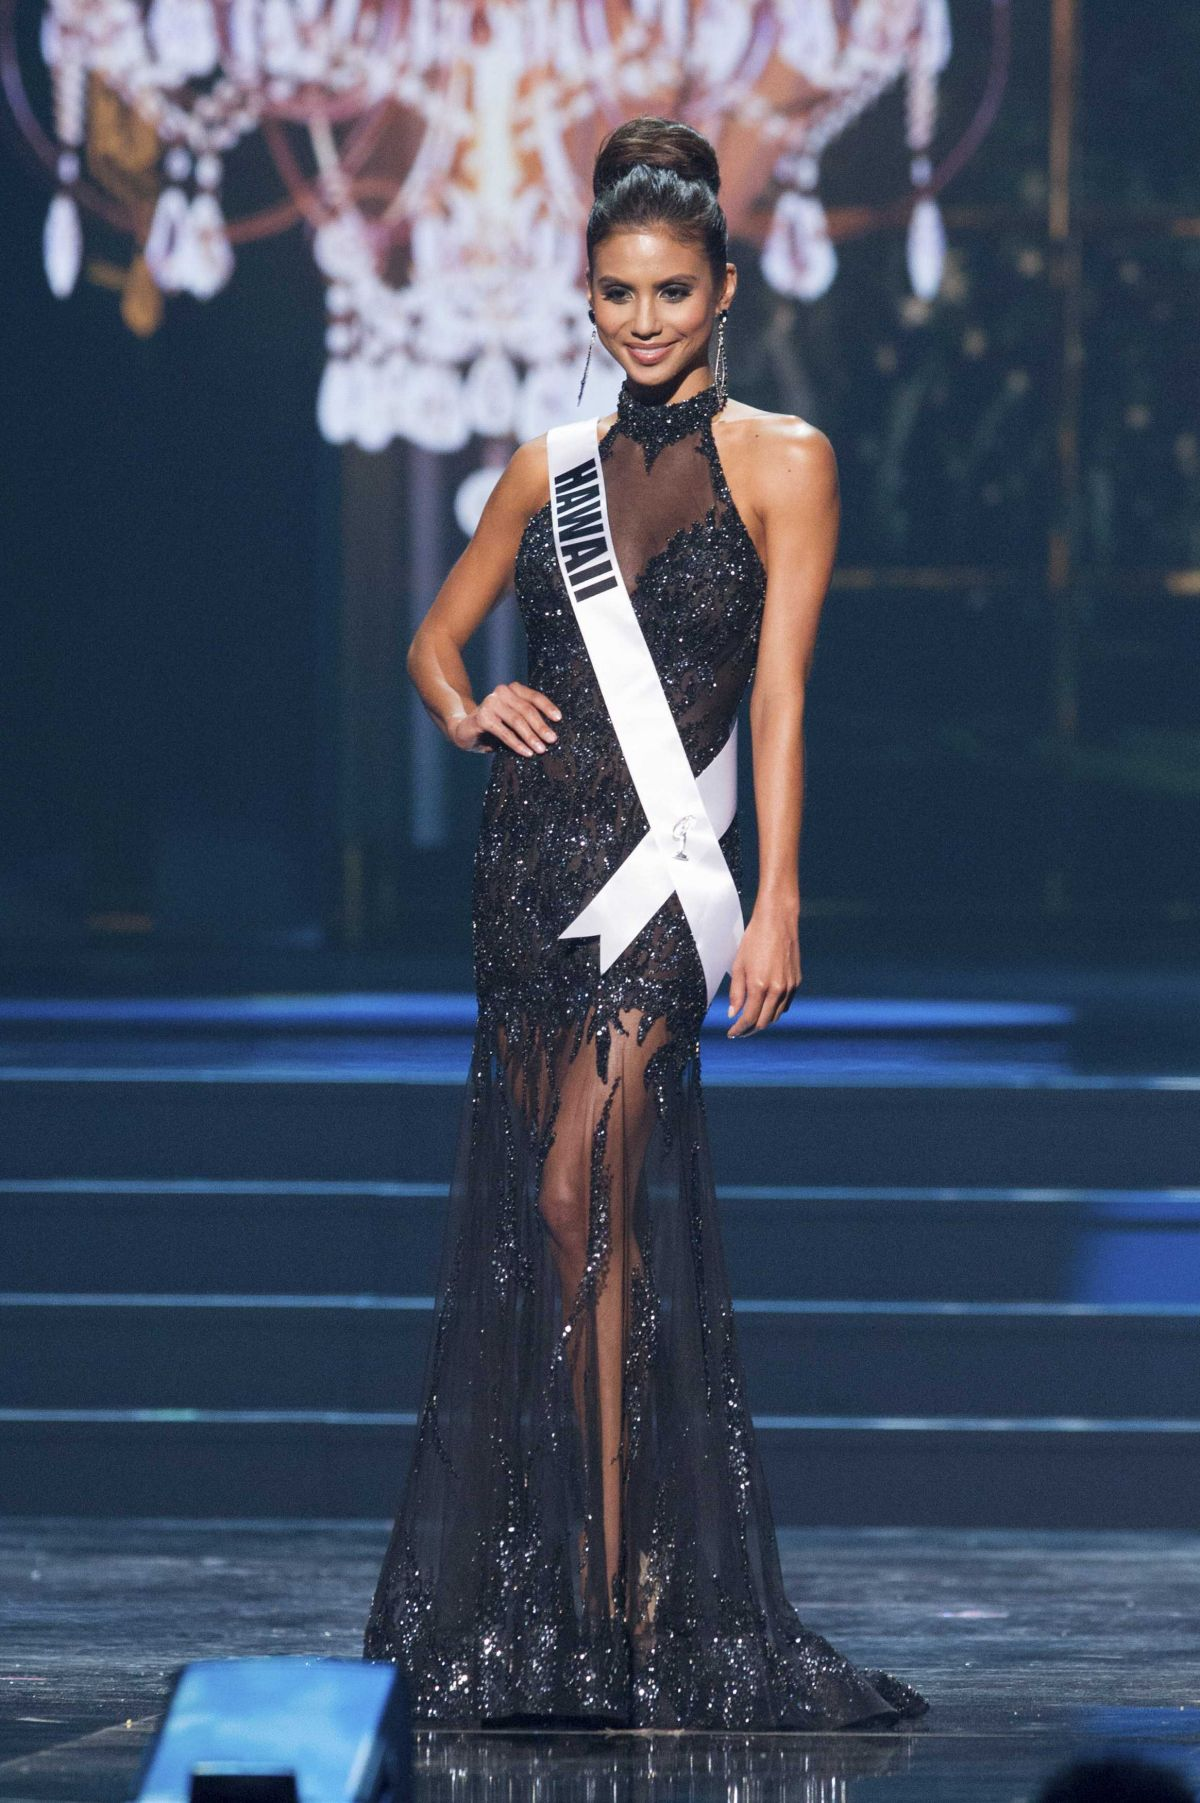 MOANI HARA at Miss USA 2014 Preliminary Competition